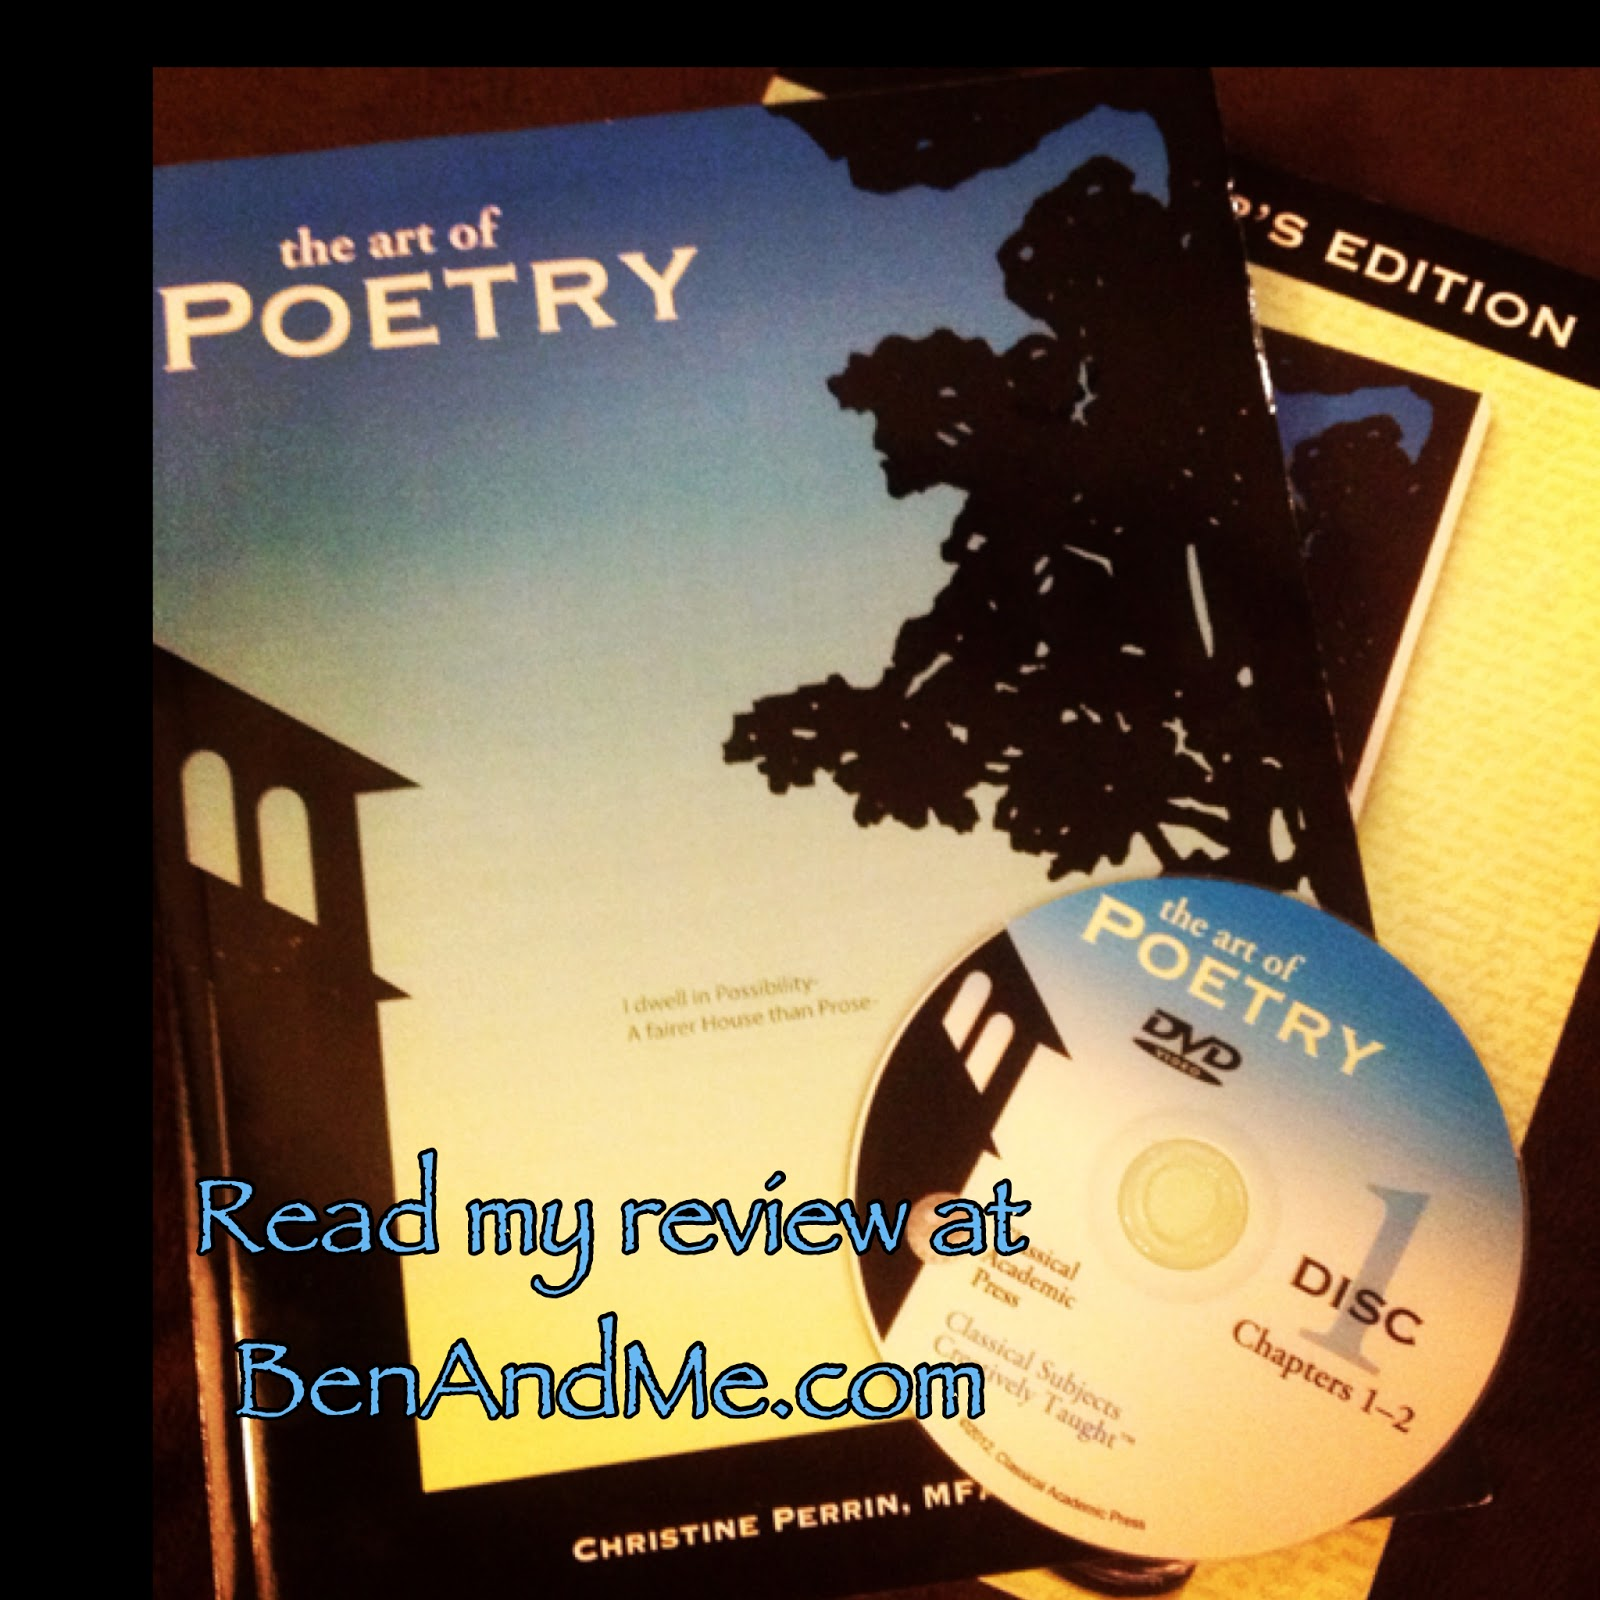 semester poetry Poetry of september 11 is a guide to poetry written in the immediate aftermath of the september 11, 2001 terrorist attacks the guide is divided into the following.